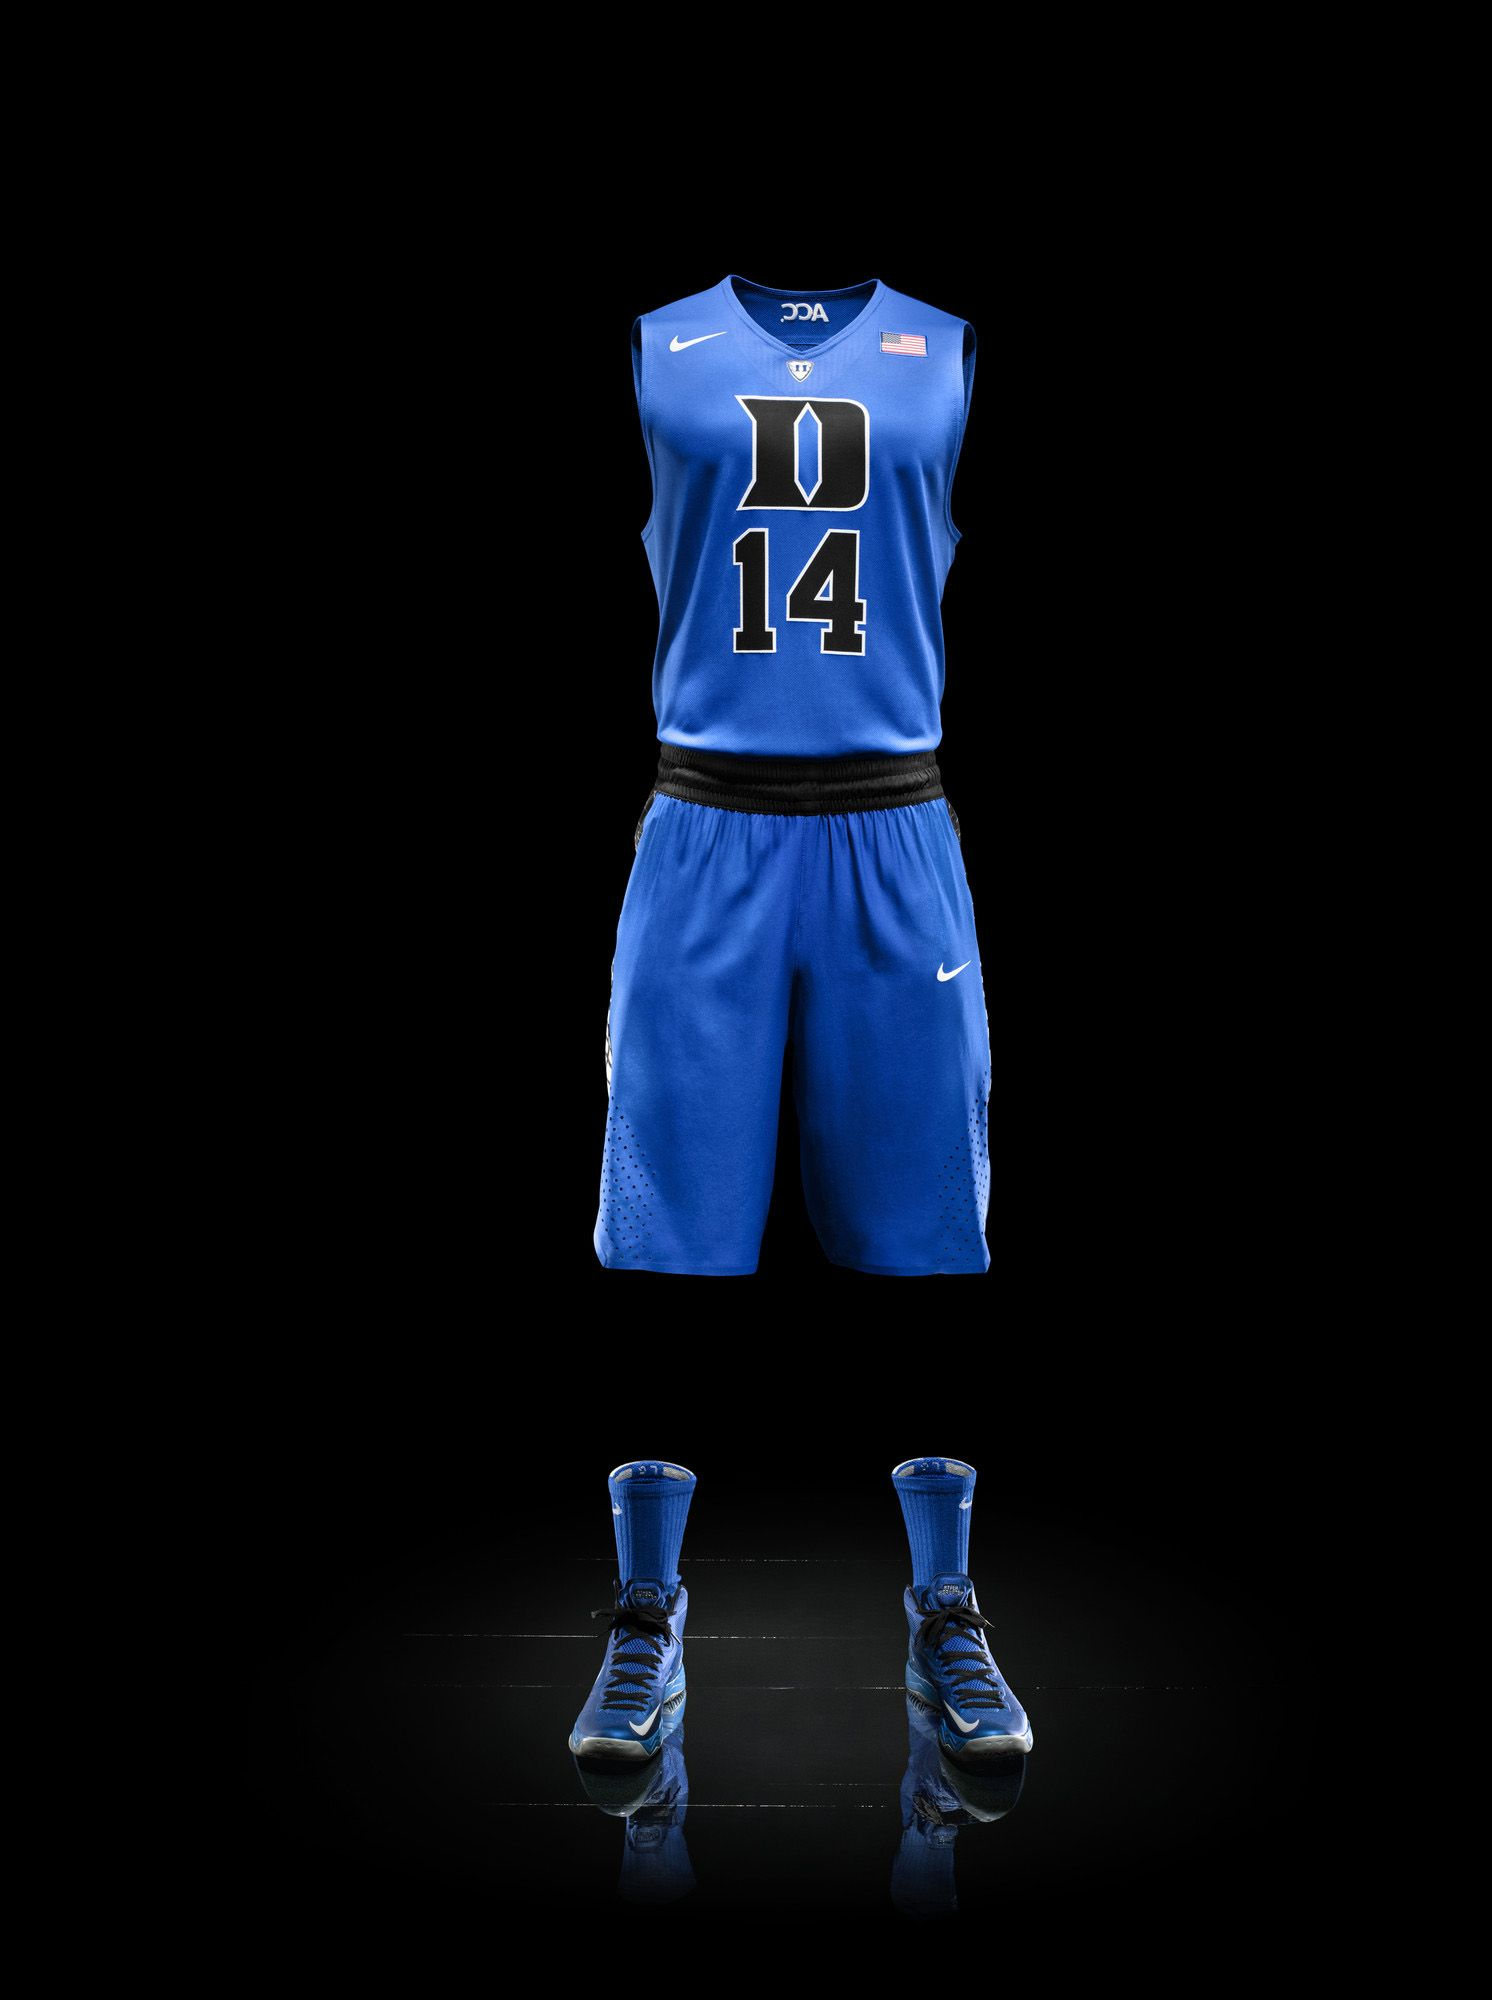 Nike Basketball Uniforms | ... uniforms duke 5 687x920 ...